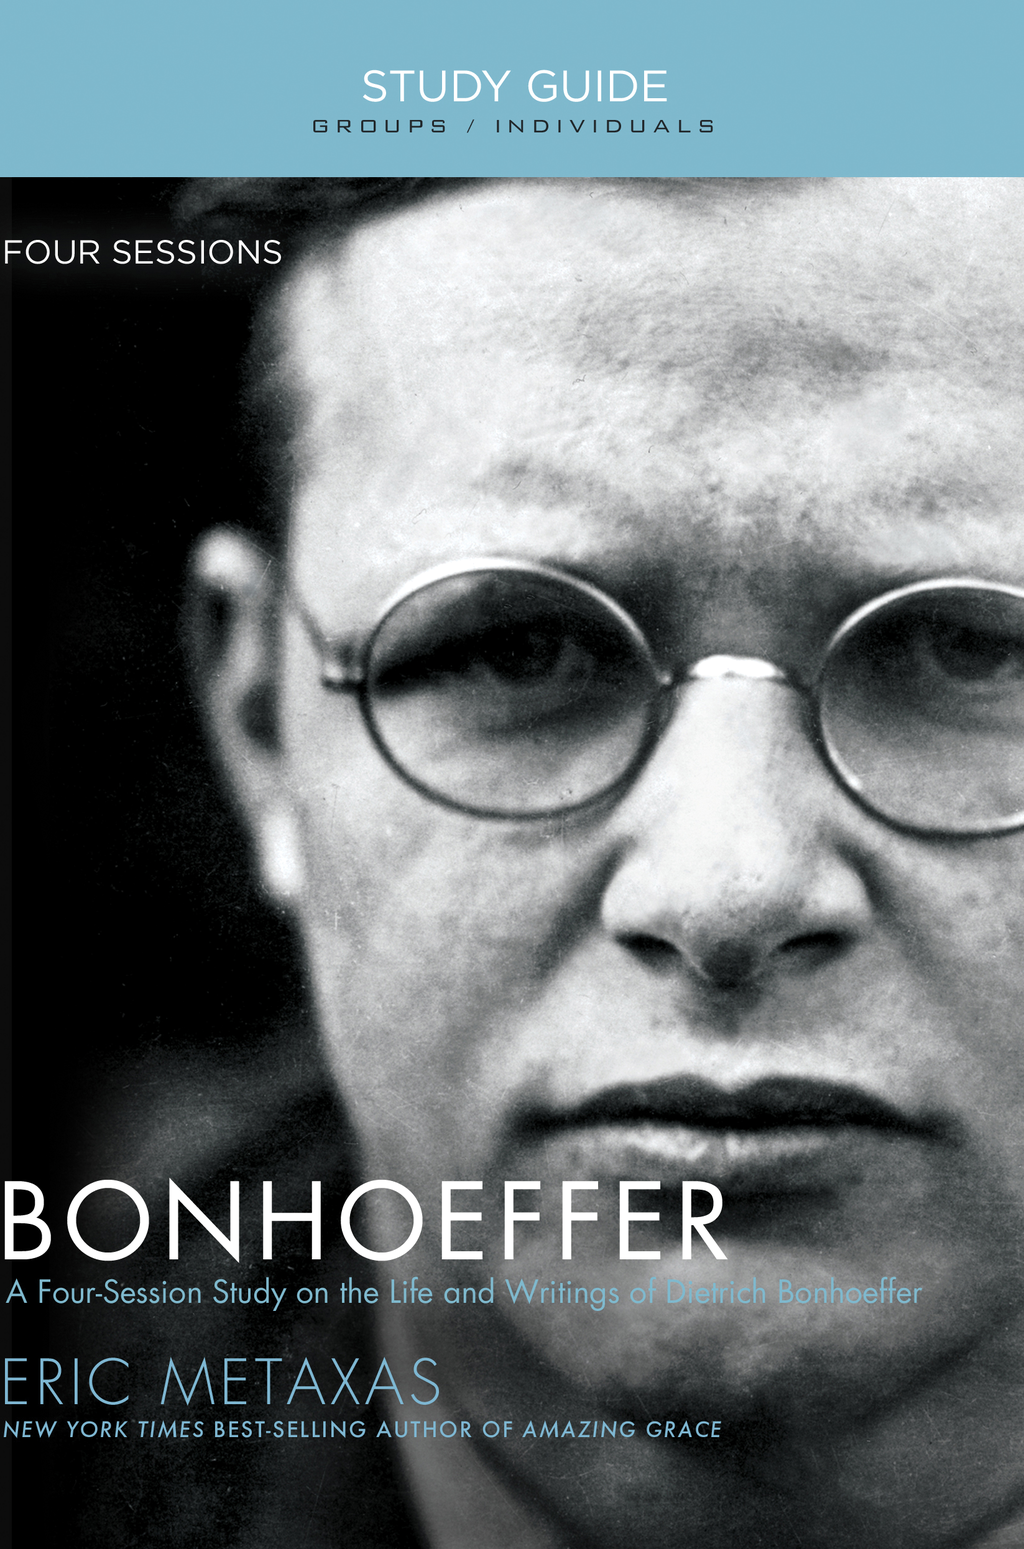 Bonhoeffer Study Guide The Life and Writings of Dietrich Bonhoeffer